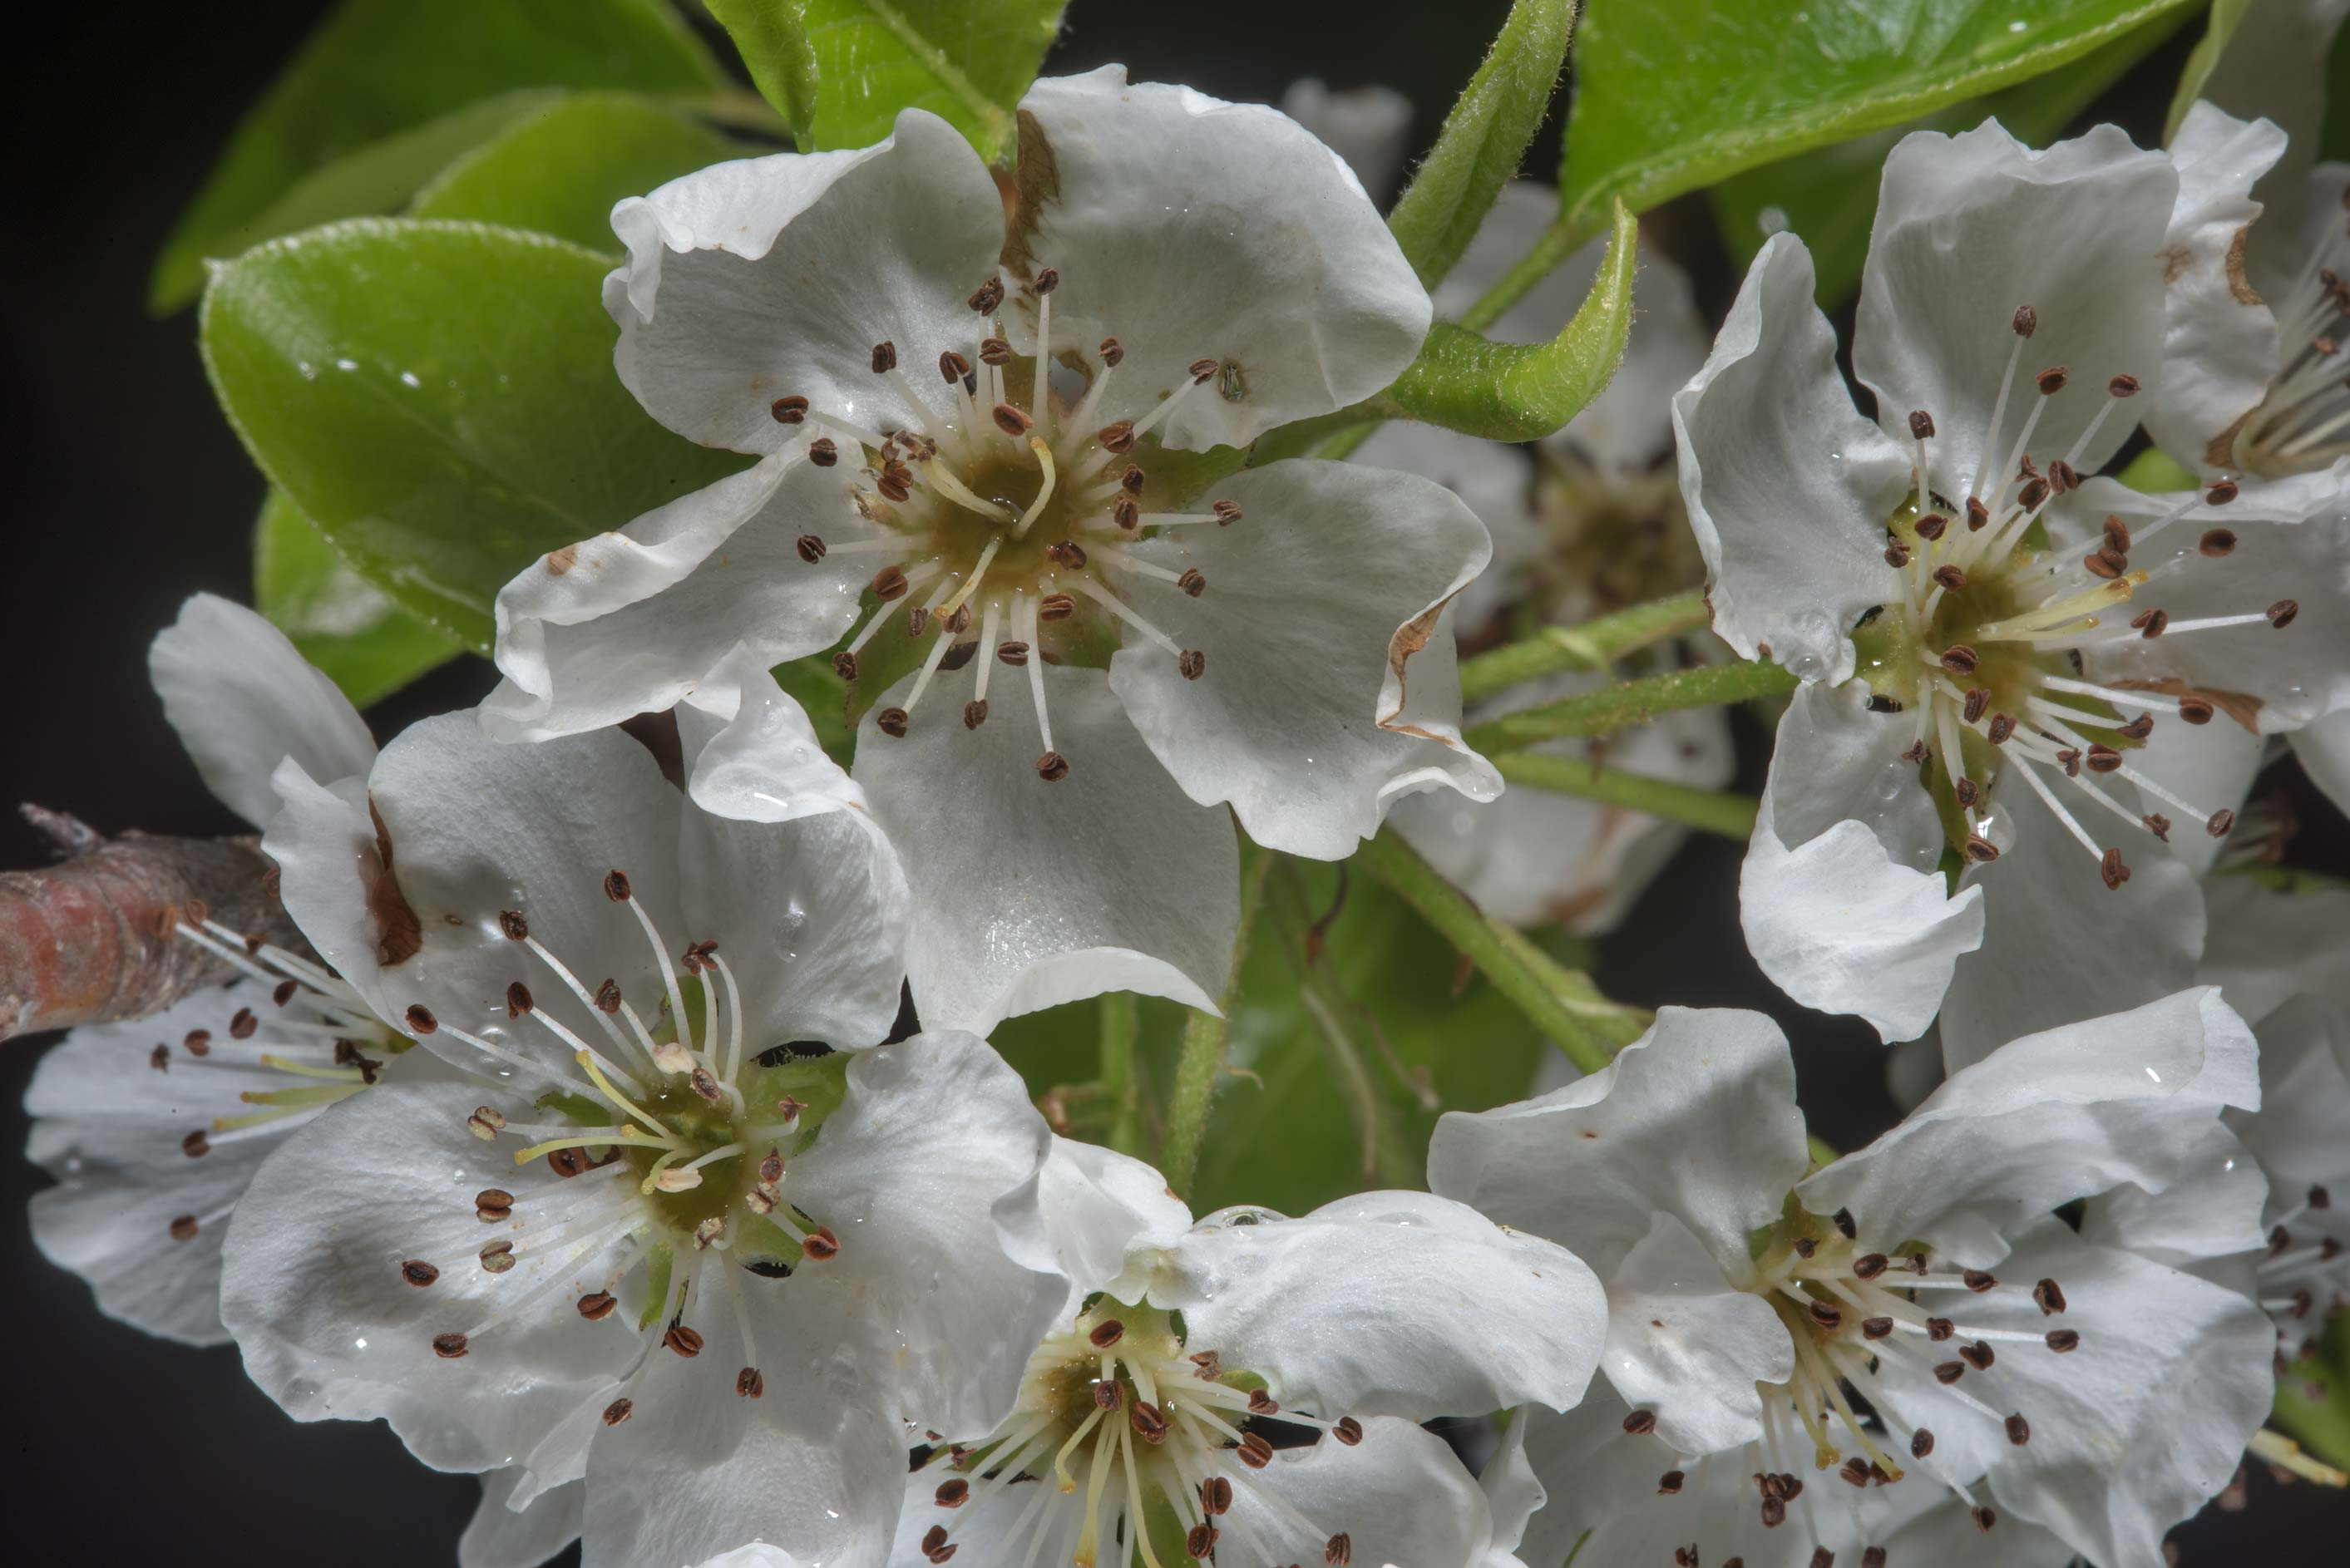 Flowers of apple tree in Wolf Pen Creek Park. College Station, Texas